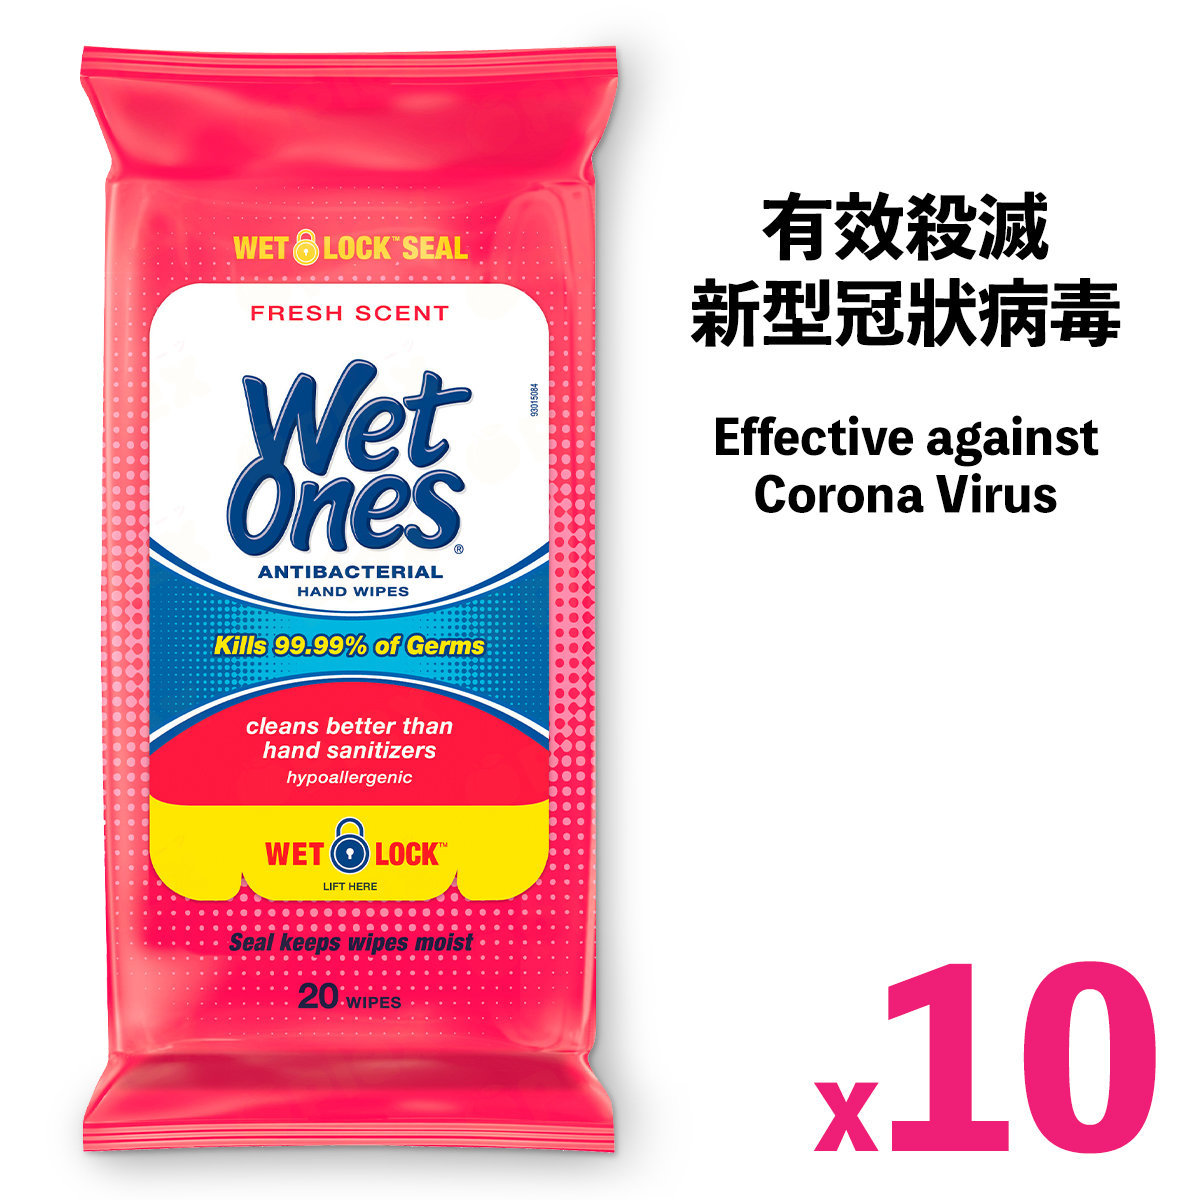 Wet Ones Anti-Bacterial Wipes (20pcs) x 10